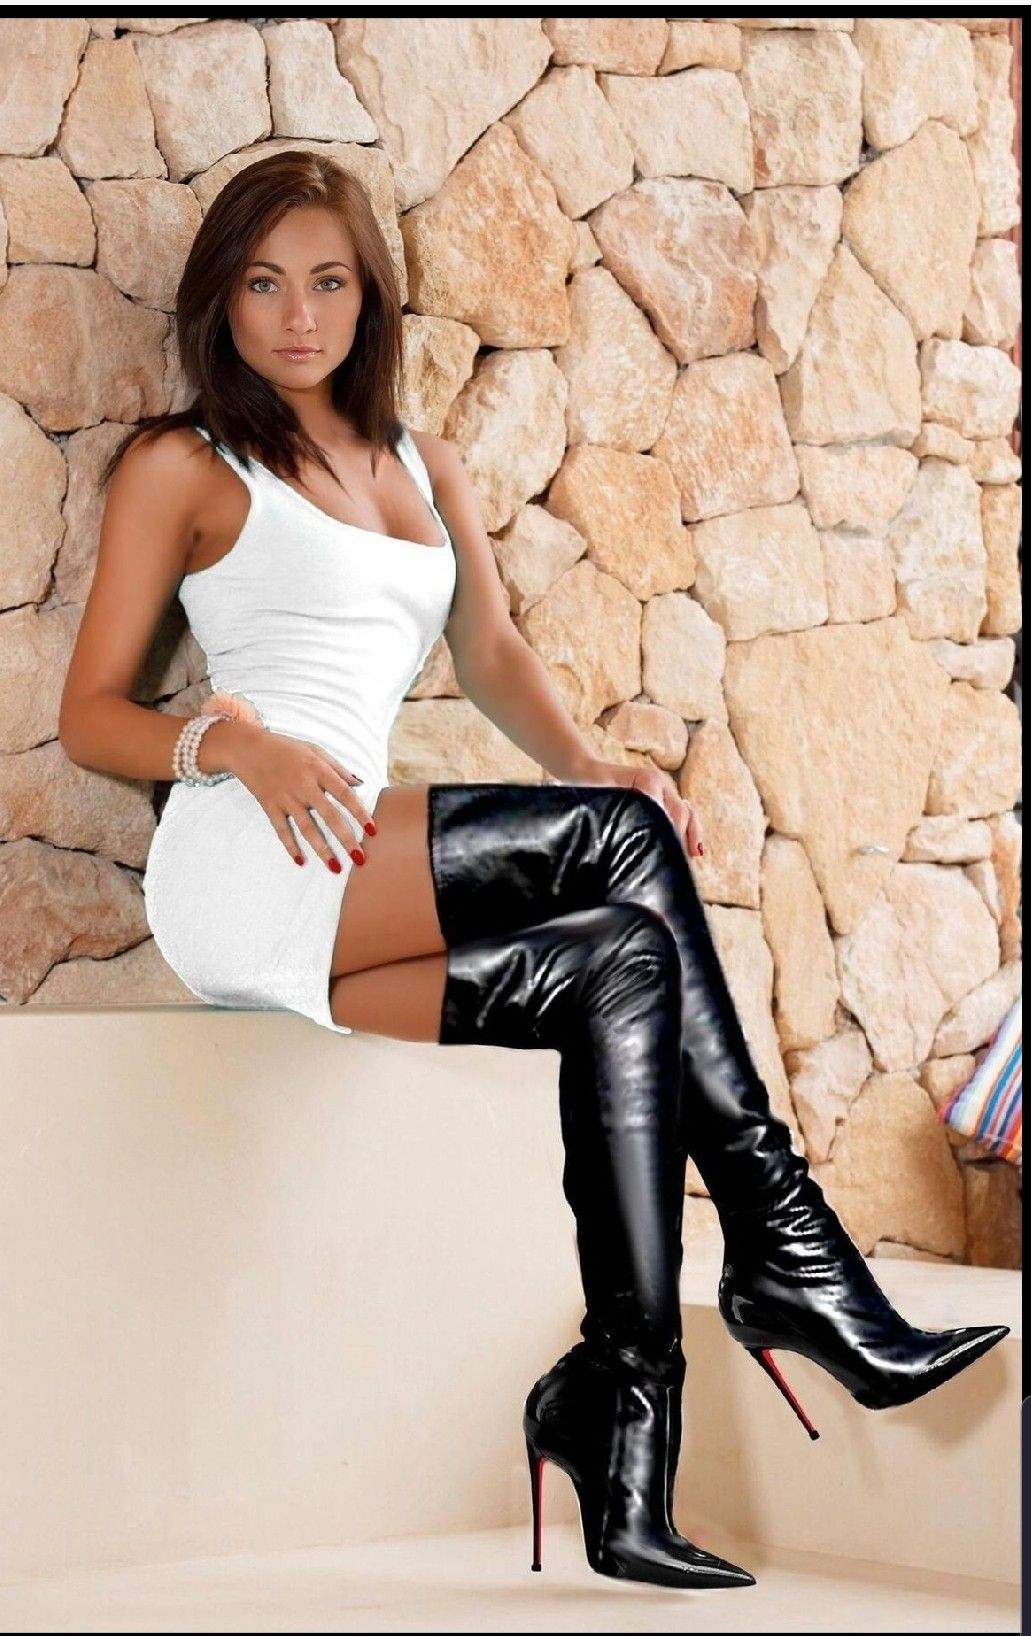 Women In Thigh High Leather Boots